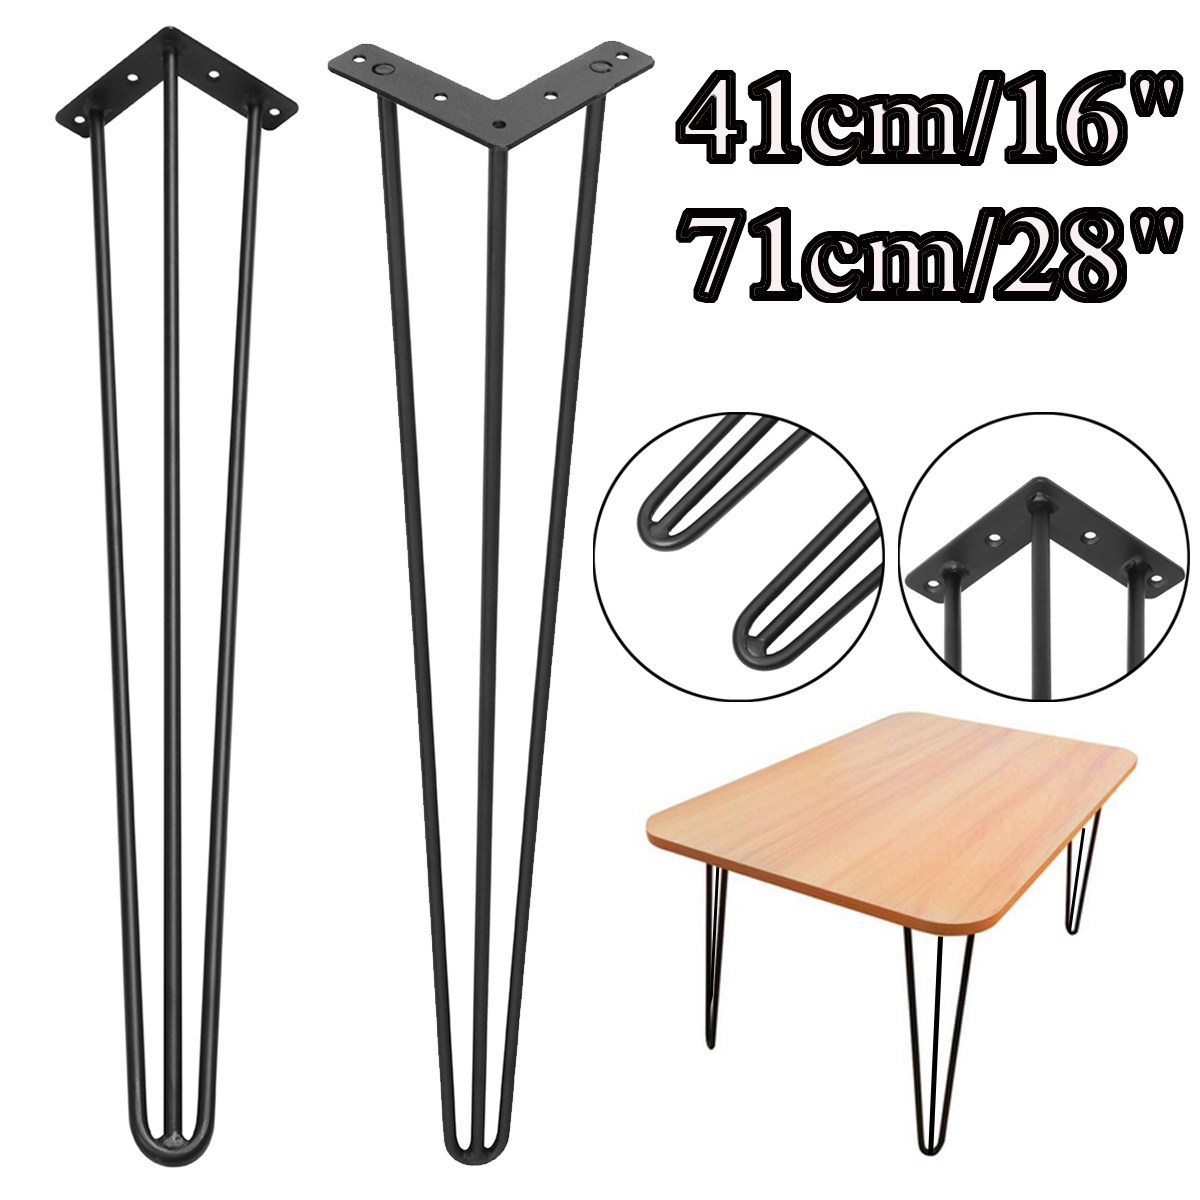 2x hairpin table legs set 3 rod dining table bench desk steel legs size 41cm 16 inch71cm 28 inch in tool parts from tools on aliexpress com alibaba group